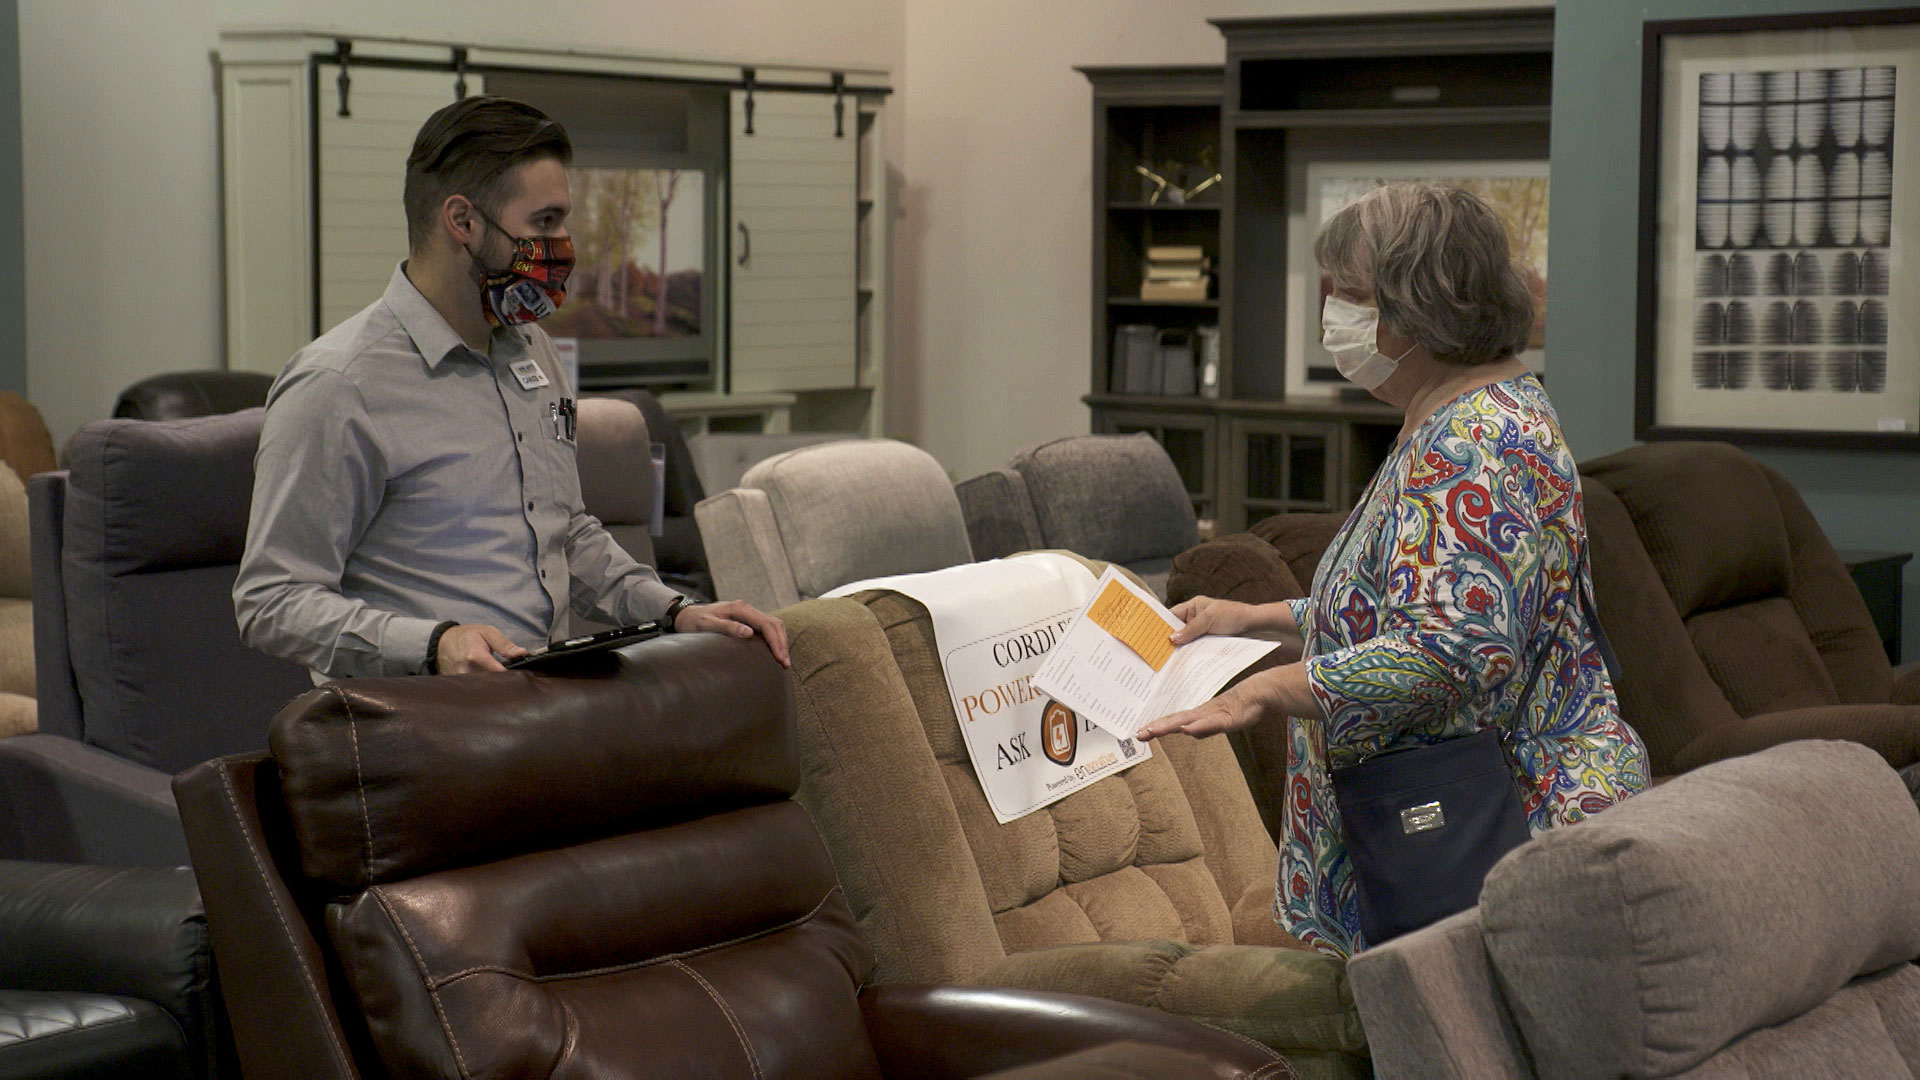 A sales associate and customer both wear masks as they interact at Sam Levitz in Tucson on May 19, 2020.